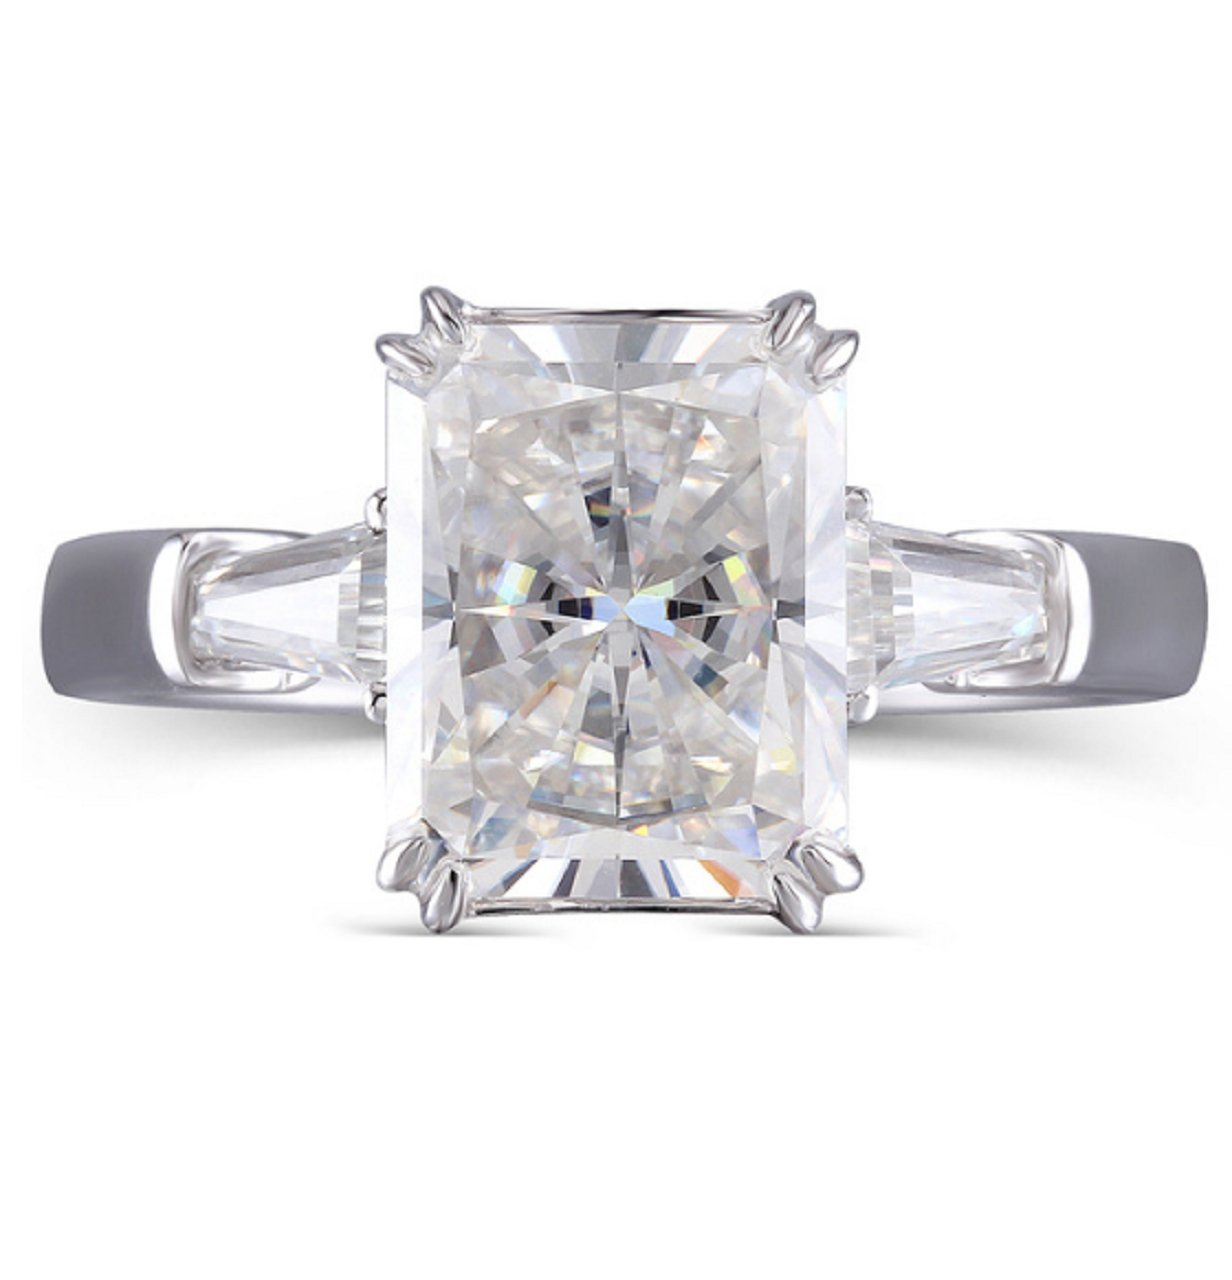 GOWE 4ct 8X10mm F Color Radiant Cut Moissanite Simulated Diamond Engagement Wedding Ring Genuine